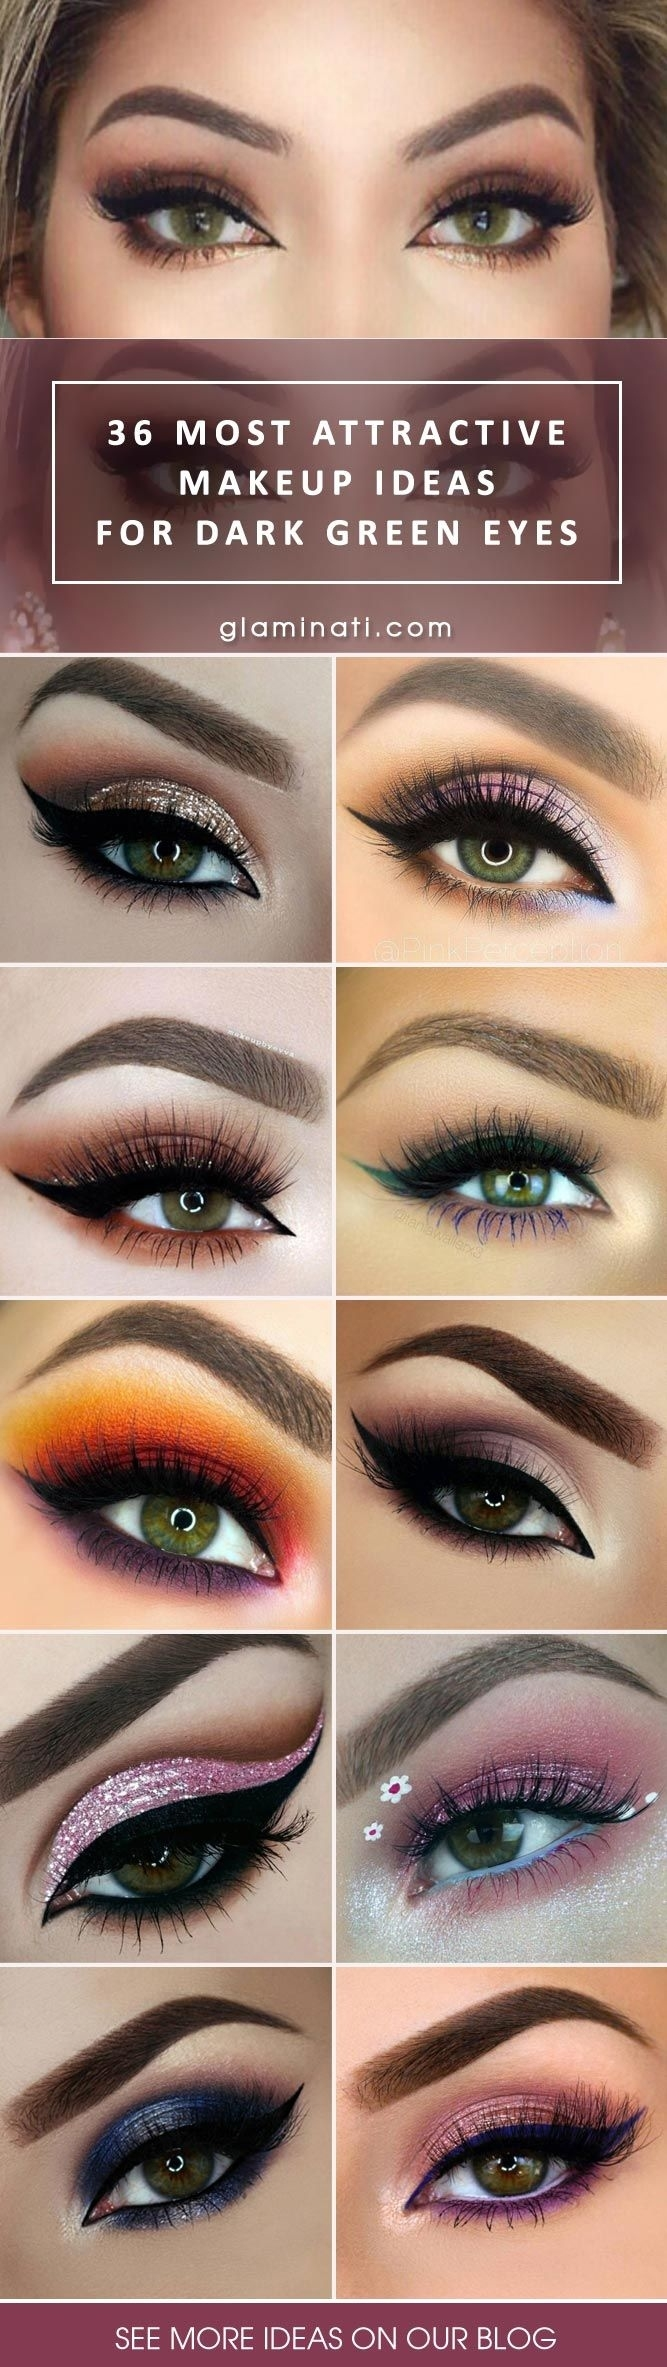 42 Most Attractive Makeup Ideas For Dark Green Eyes | Makeup within Makeup Ideas For Hazel Eyes And Dark Brown Hair